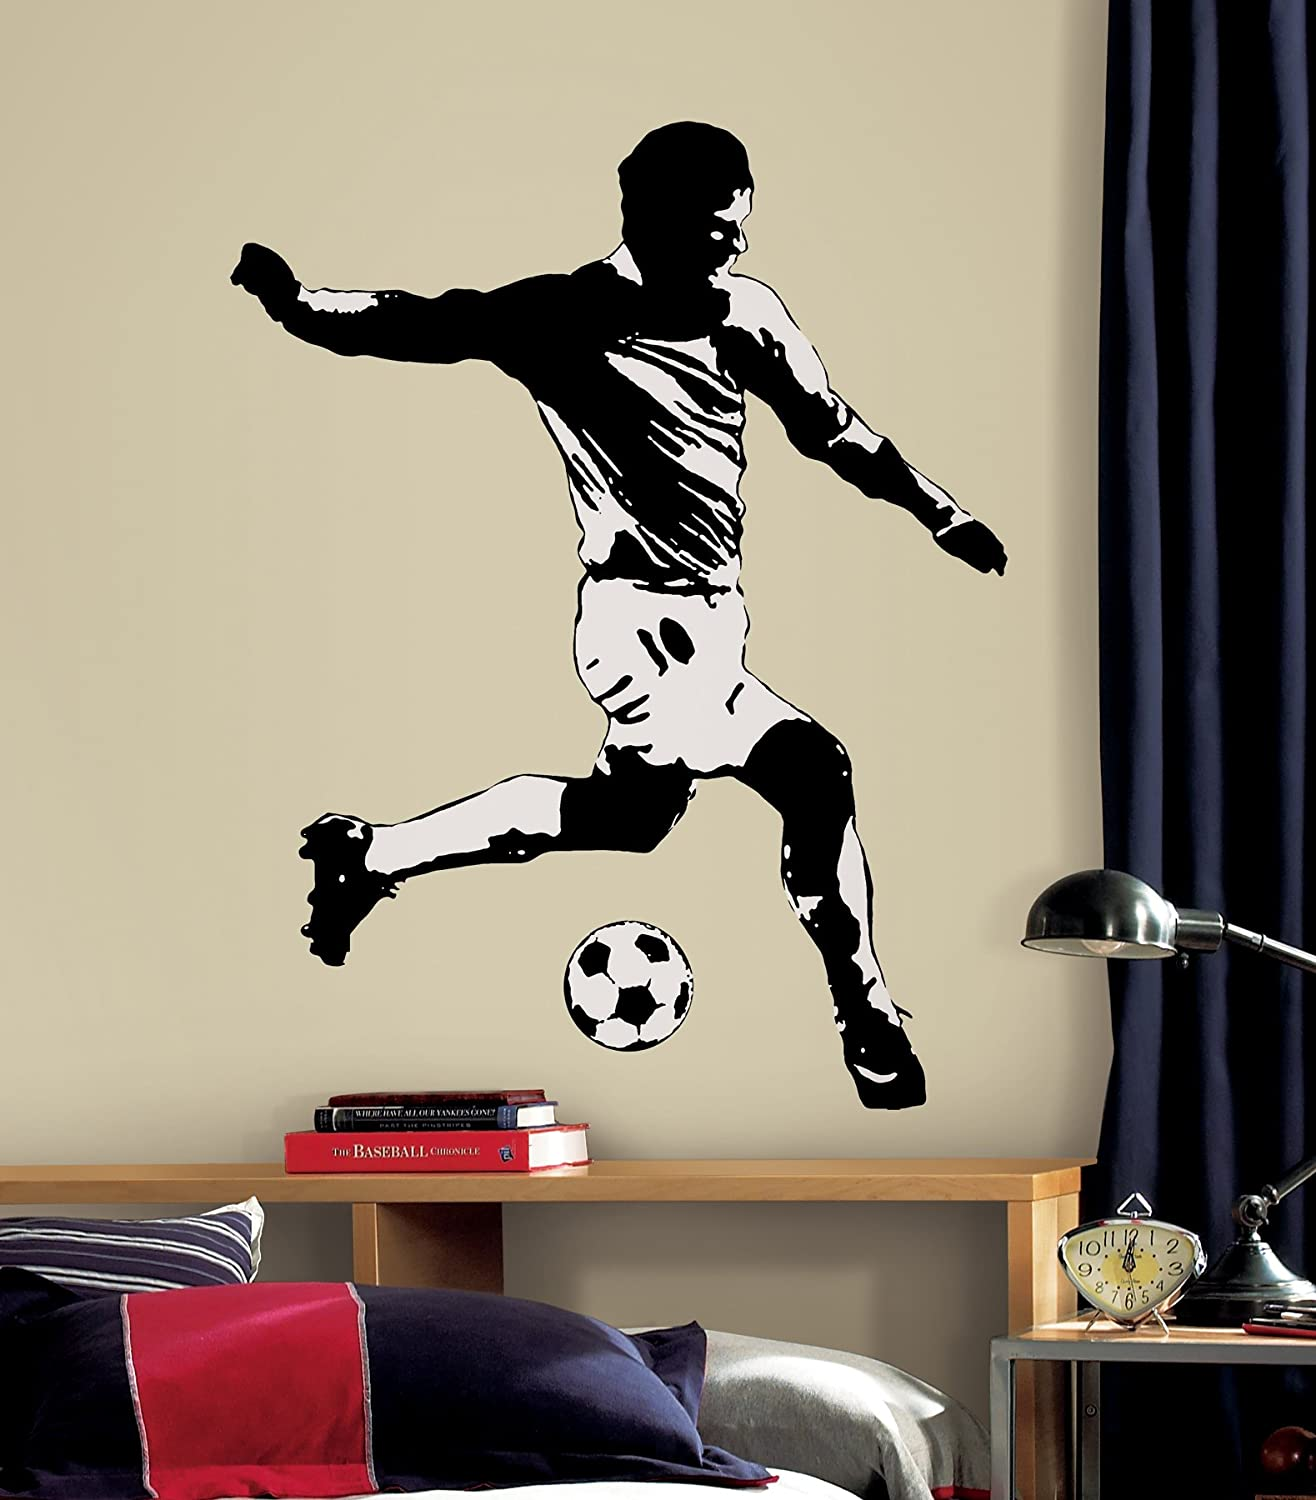 Awesome RoomMates Repositionable Wall Stickers   Football Player: Amazon.co.uk:  Kitchen U0026 Home Part 30